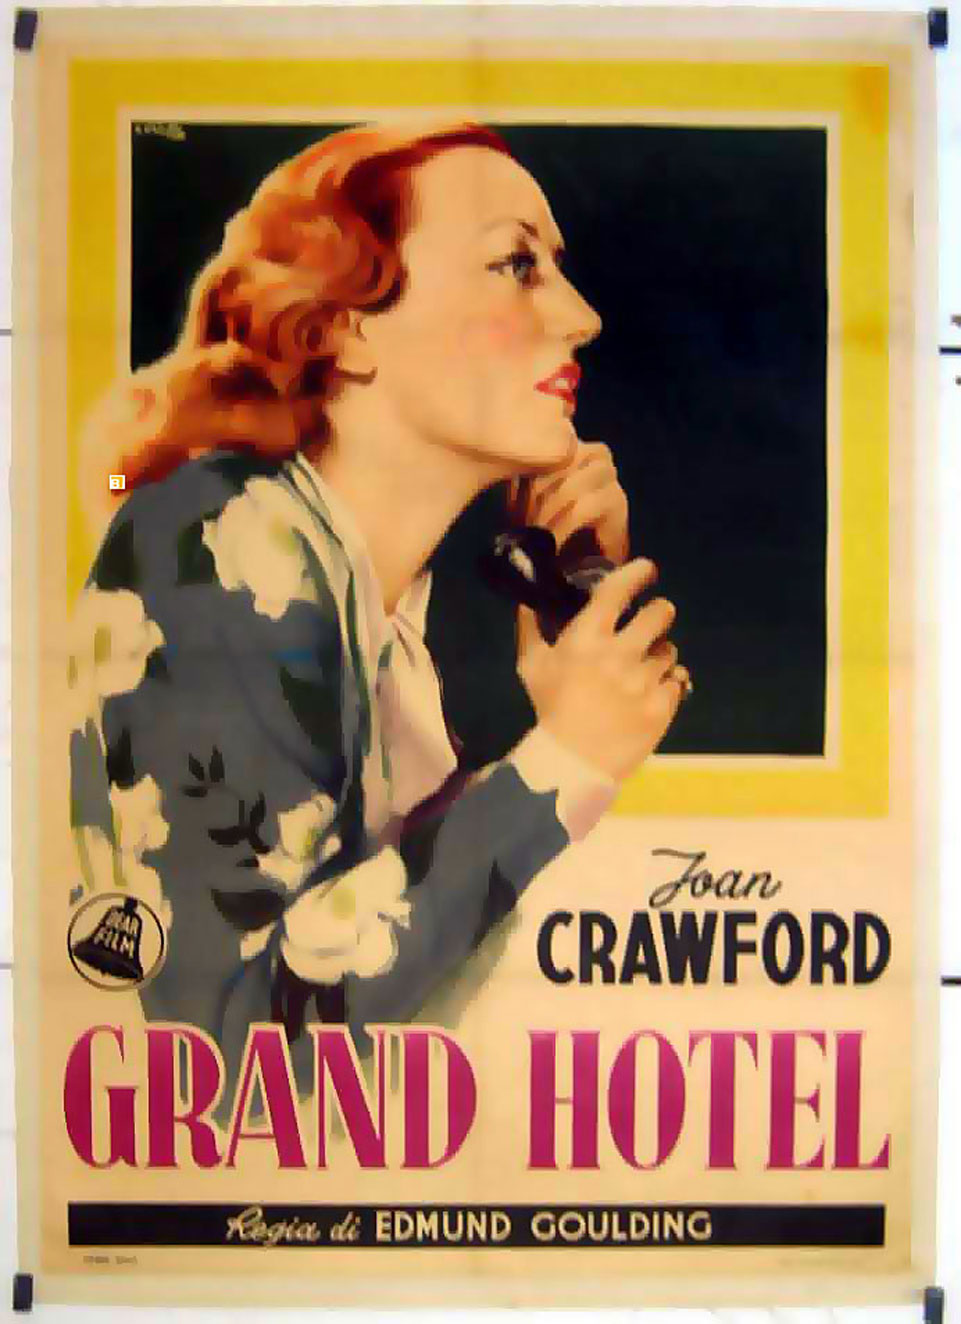 Quot Grand Hotel Quot Movie Poster Quot Grand Hotel Quot Movie Poster